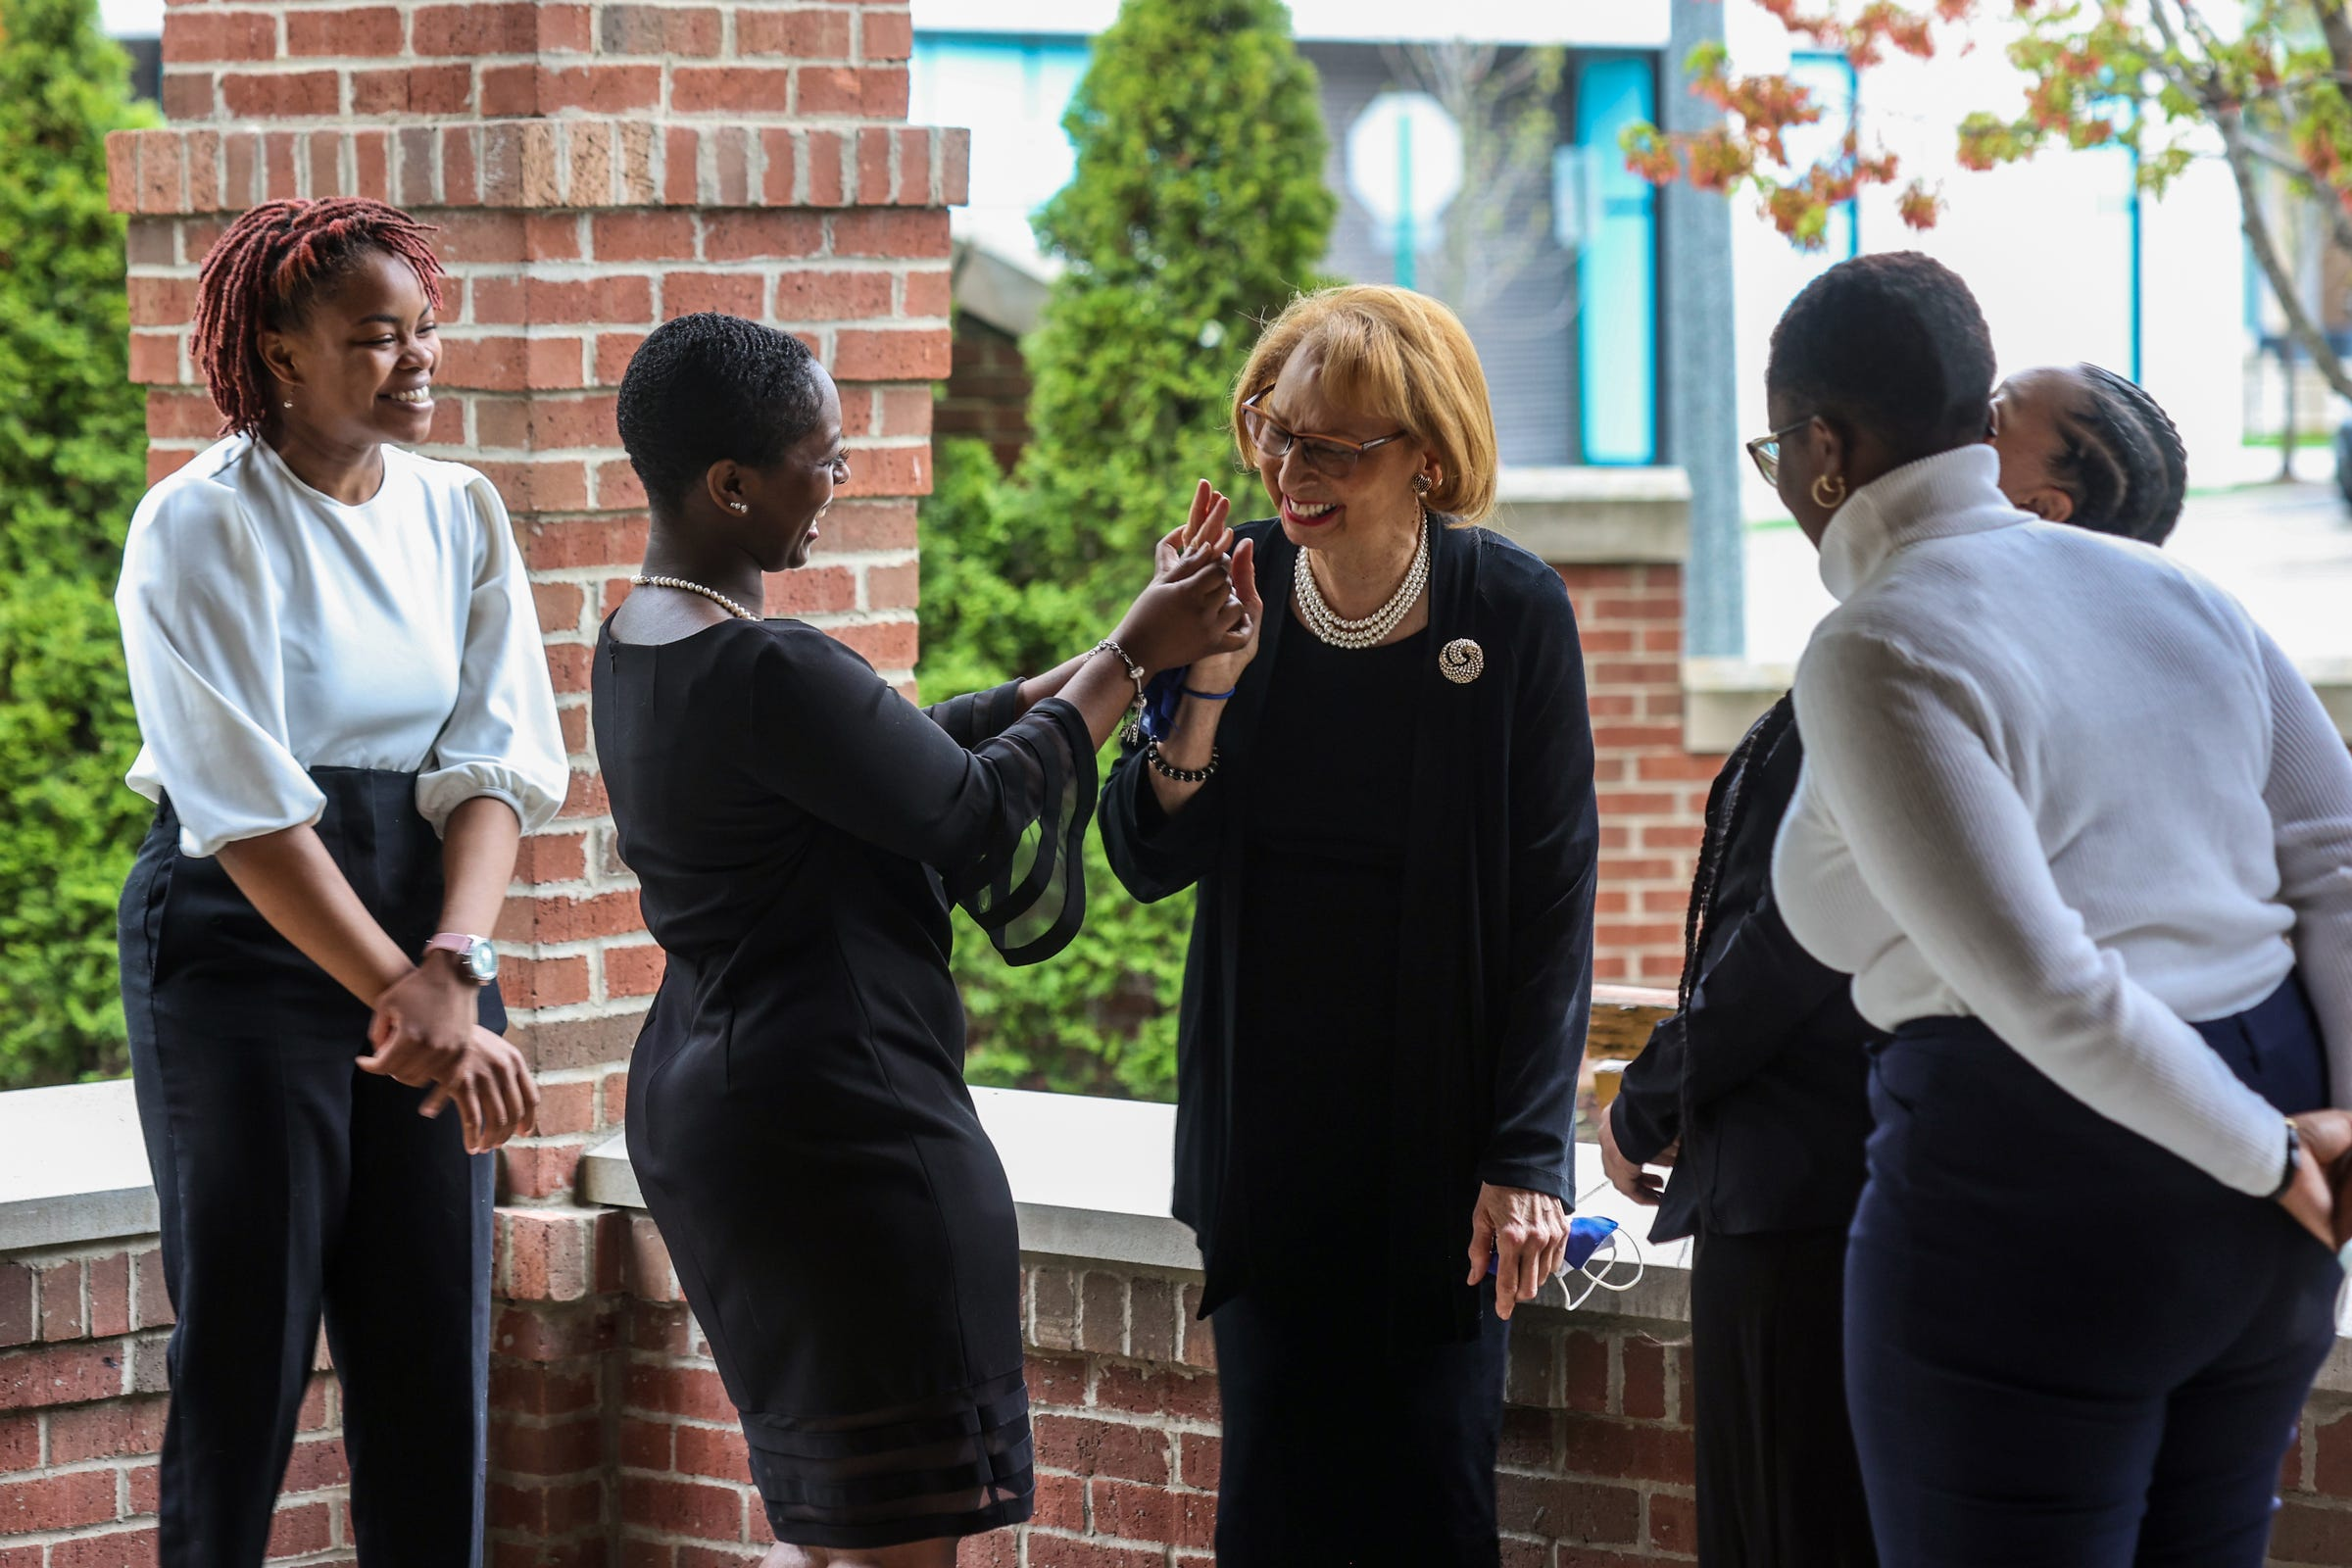 Wayne State University Student Arnell Kinney, 21, of Detroit looks on as Nia Anderson, 23, of Detroit helps President Jennifer Poole, 75, of West Bloomfield with her lipstick with help from Dominique Jenkins, 28, of Detroit and Sydni Alexis Elebra, 20, of Detroit at the Village of Brush Park Manor Paradise Valley in Detroit on April 29, 2021. Poole is presenting the students with the Jessie P. Slaton Scholarship awarded by the Elliottorian Business and Professional Woman's Club. The Elliottorian Business and Professional Women's Club is the first club of Black business women in Detroit and Michigan and was founded in 1928.